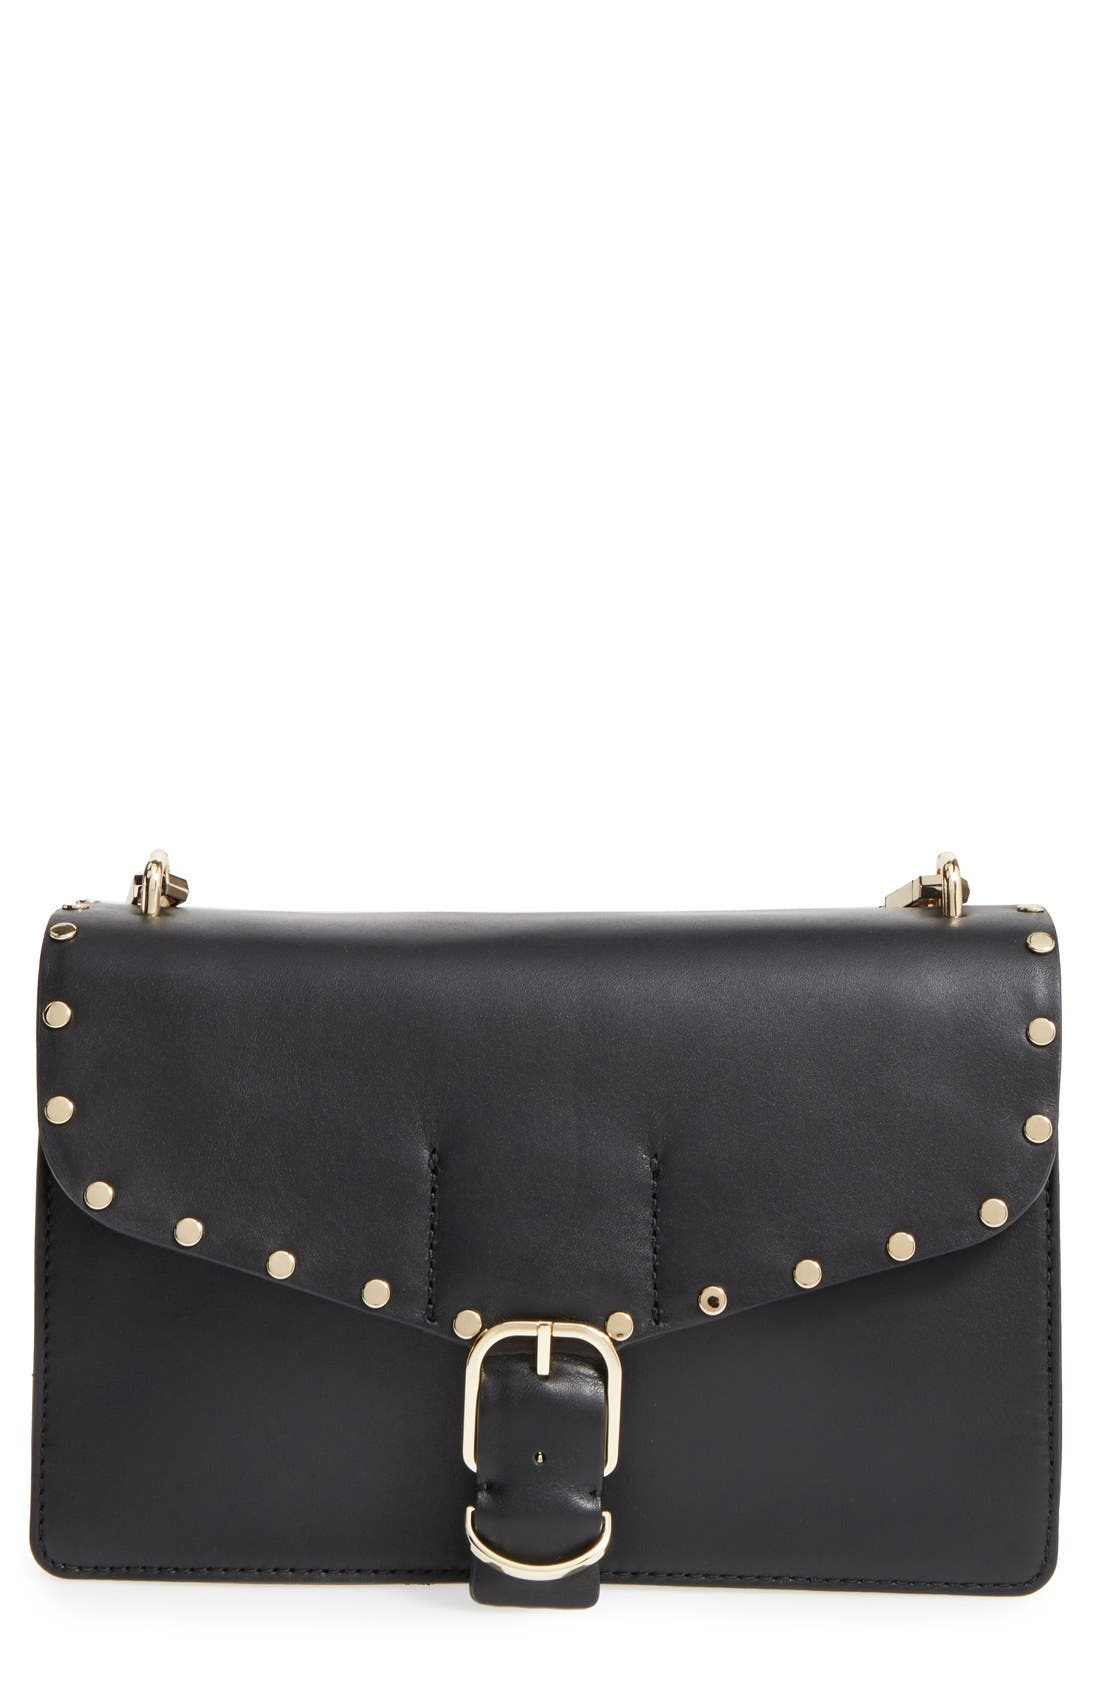 Alternate Image 1 Selected - Rebecca Minkoff Medium Biker Leather Shoulder Bag